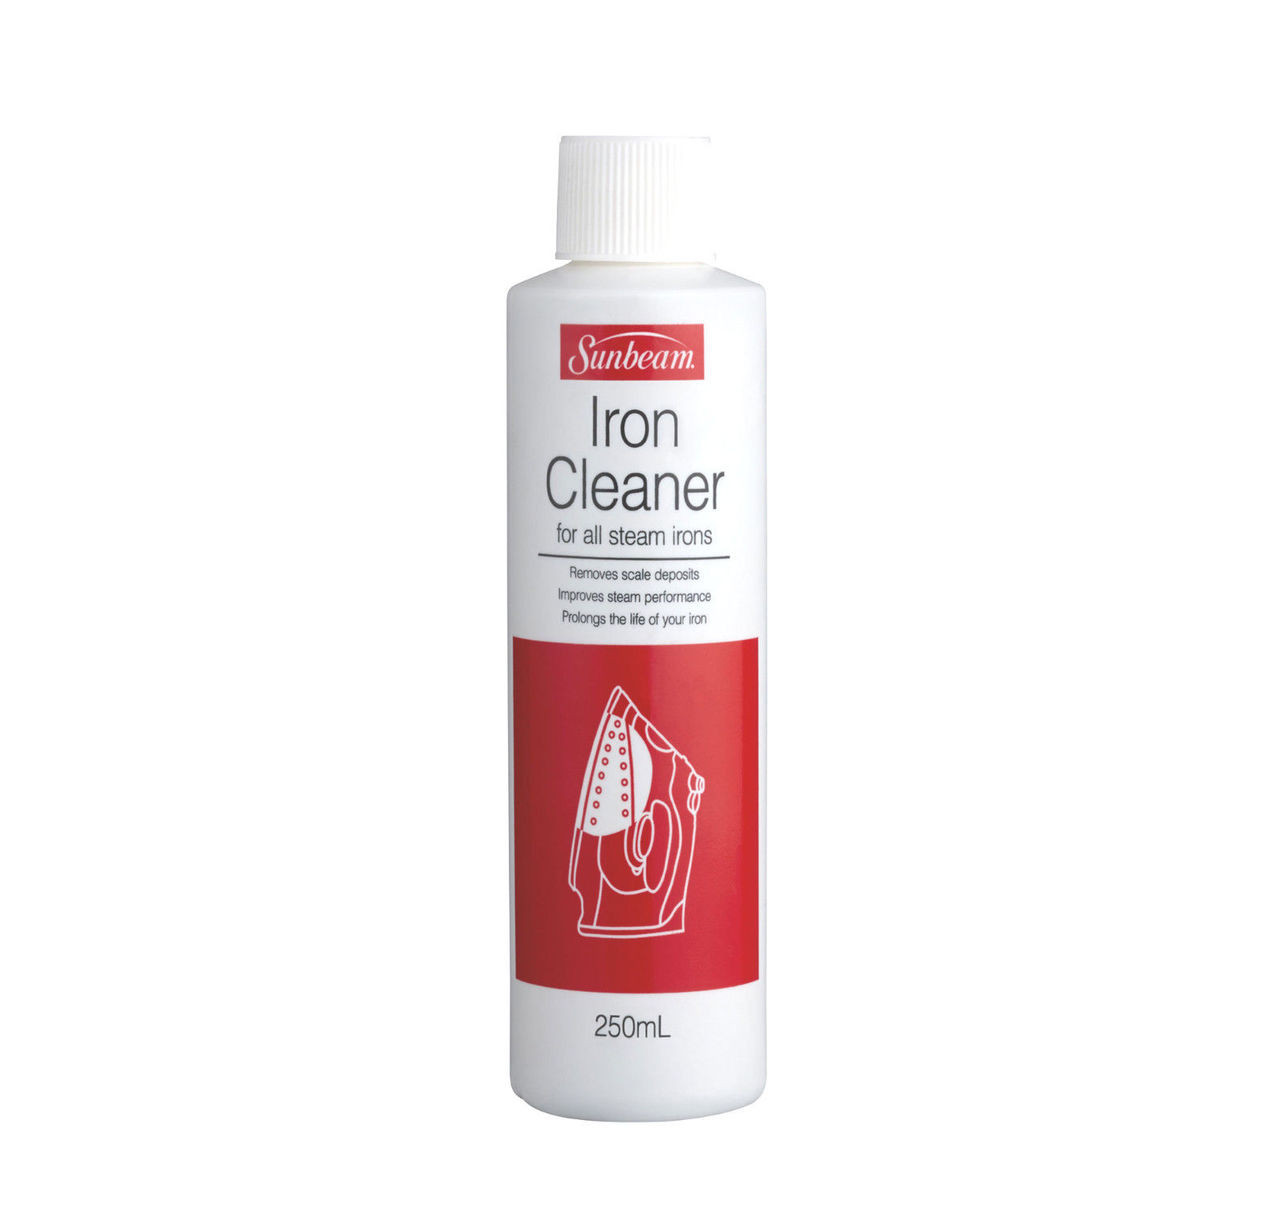 Sunbeam SR0300 Iron Cleaner 250ml Use to Remove Mineral Deposits from your Iron